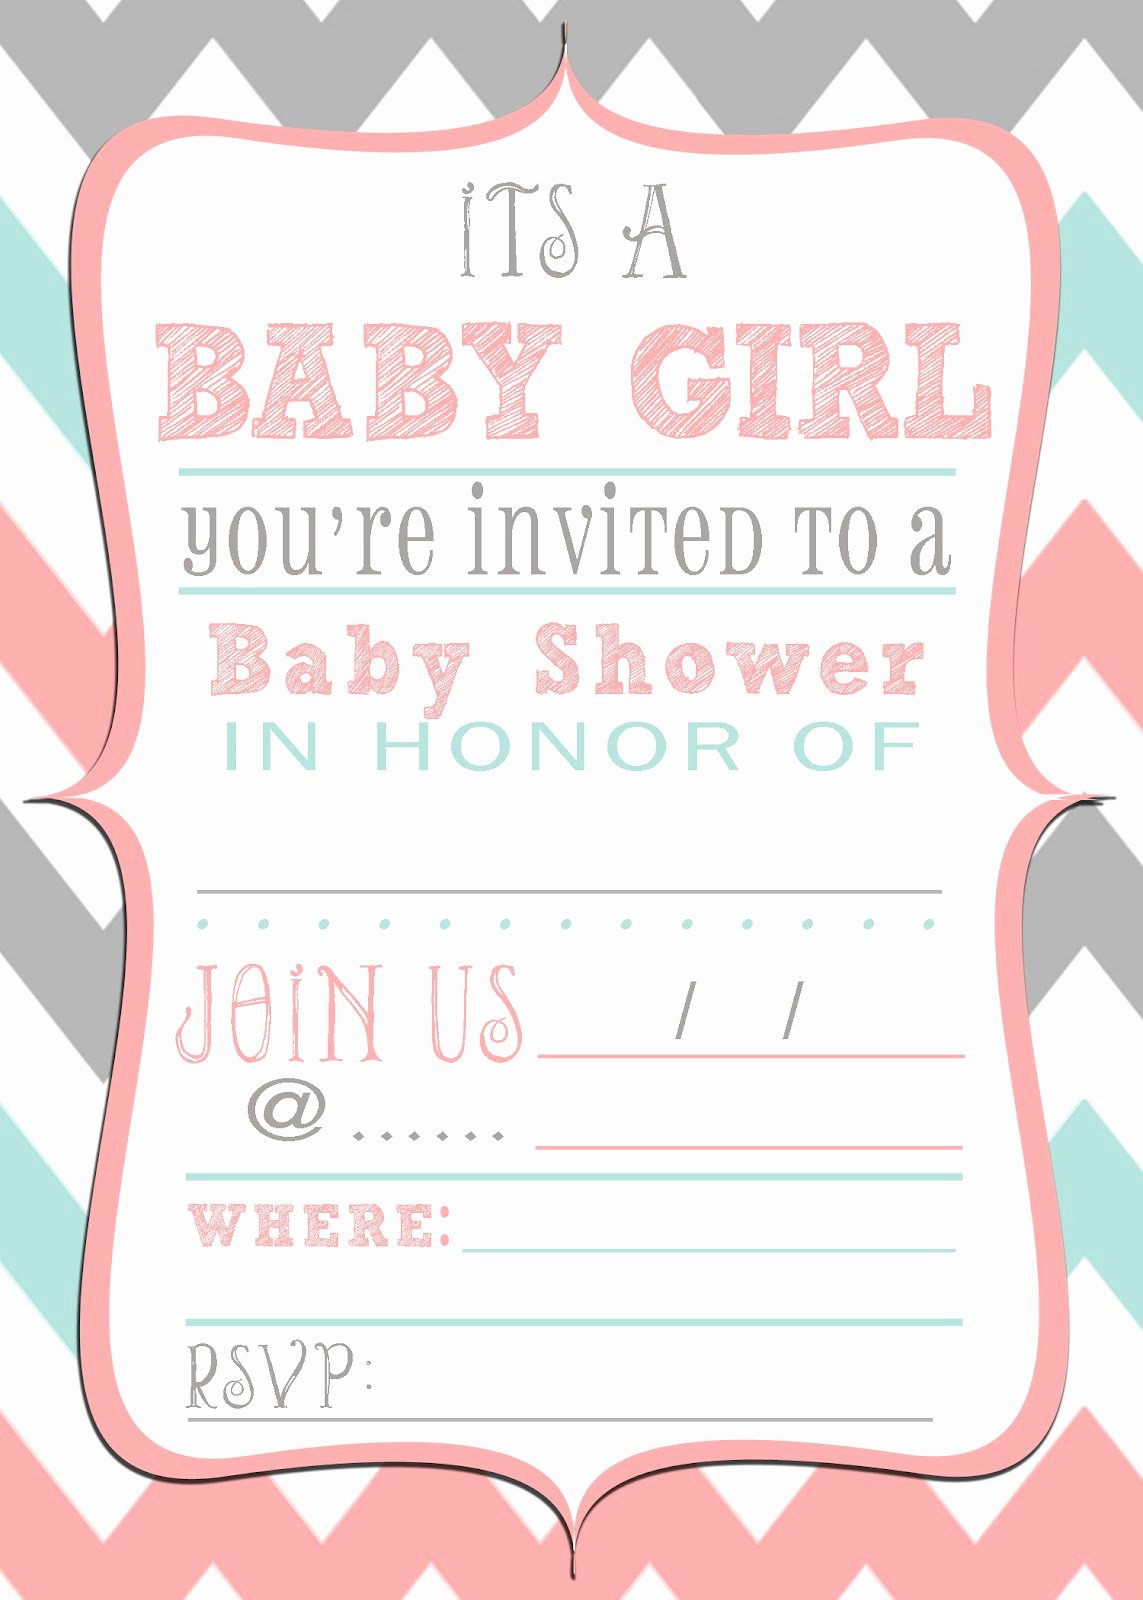 Baby Shower Banner Template Awesome Mrs This and that Baby Shower Banner Free Downloads